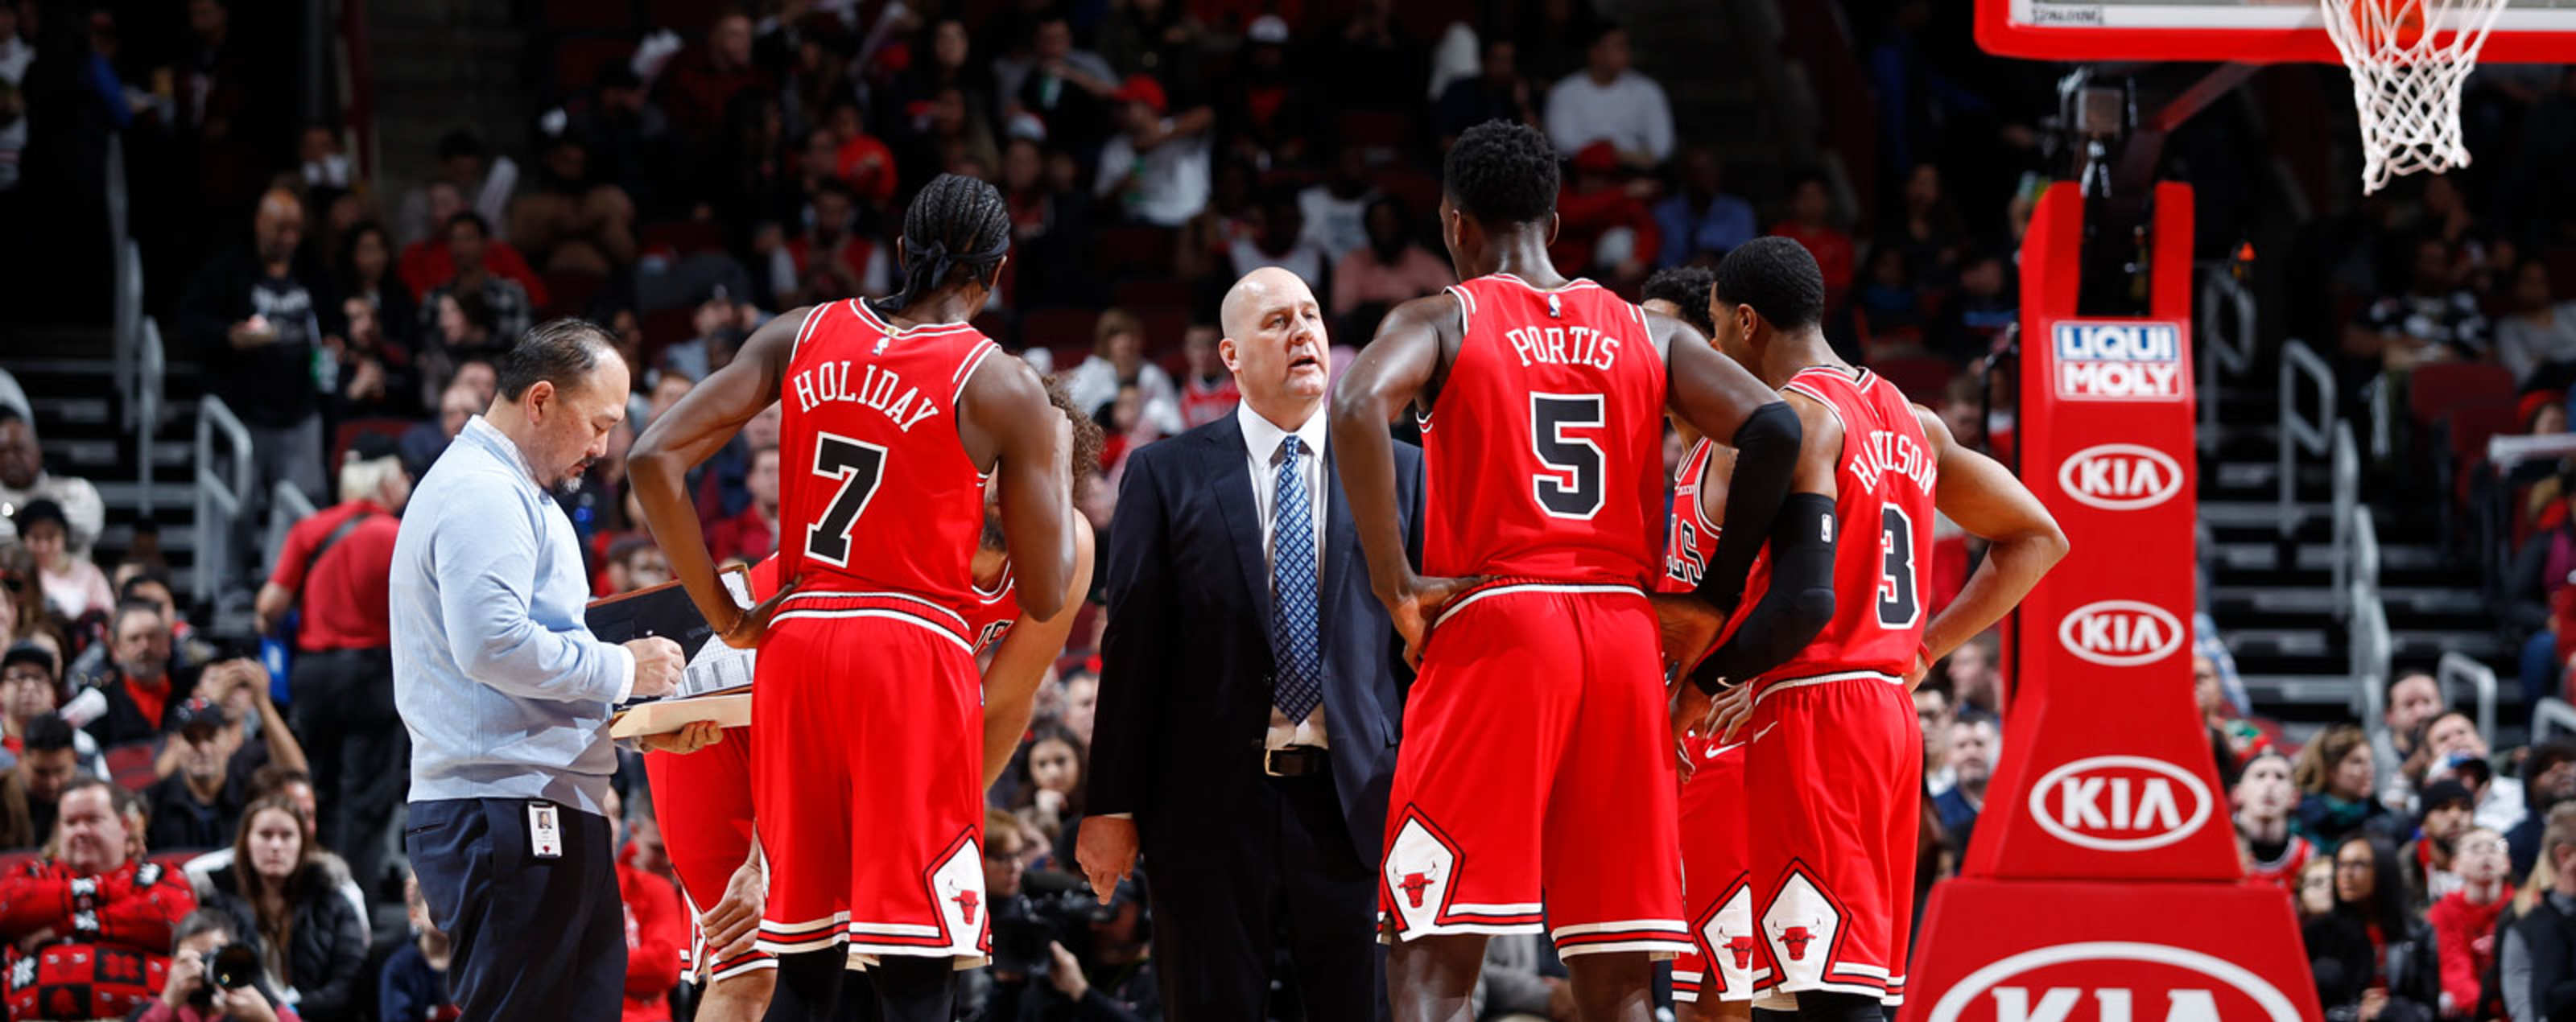 The Chicago Bulls huddle during a timeout against the Brooklyn Nets.